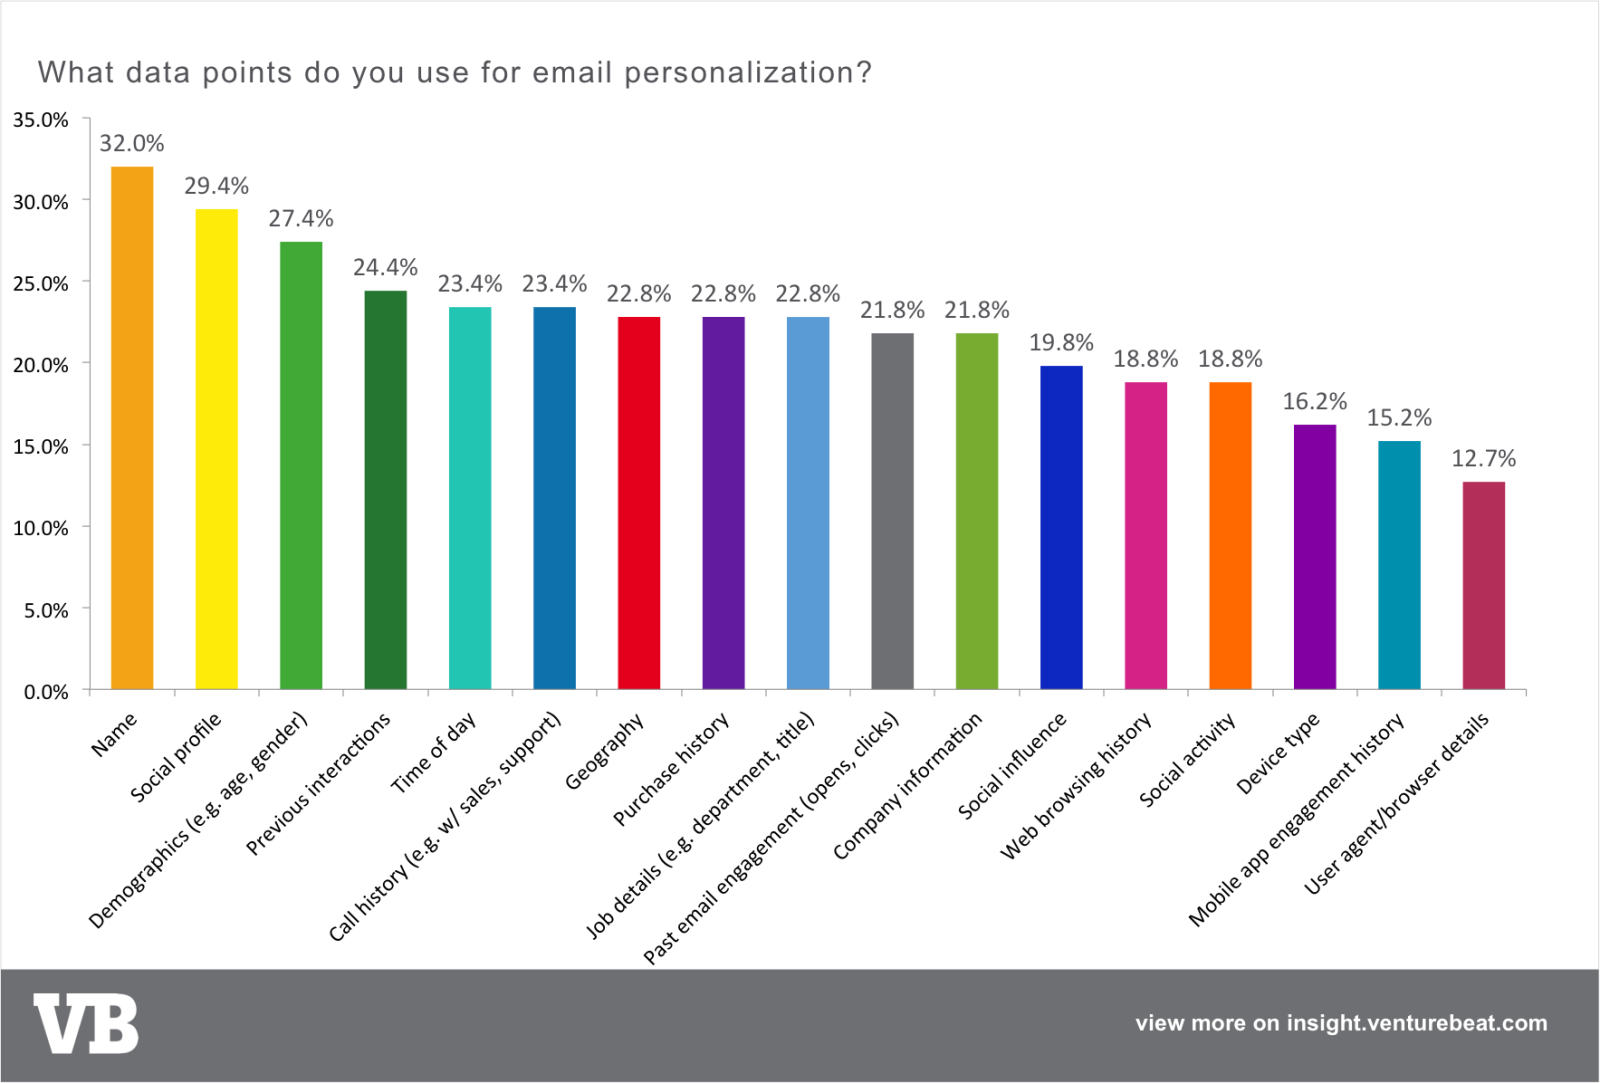 What data points do you use for email personalization?